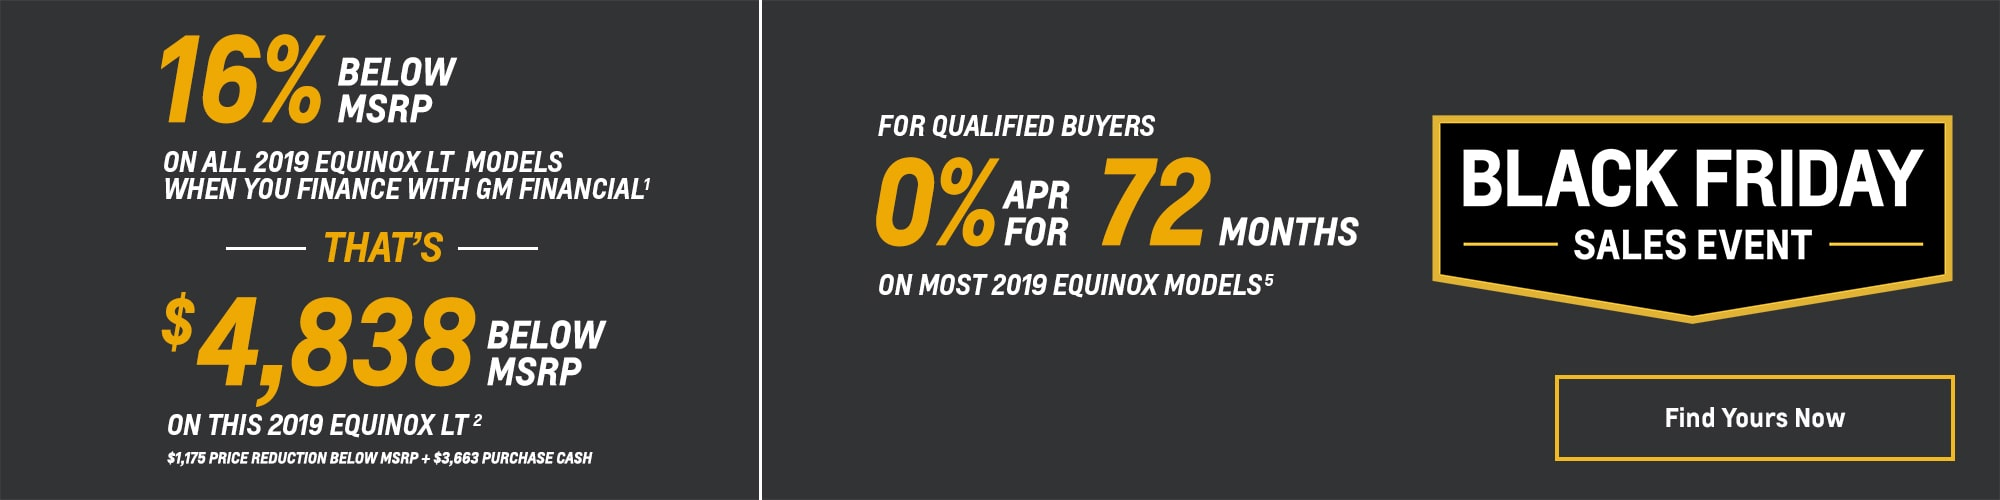 Black Friday Chevy Deals and Offers: 2019 Equinox 16% Below MSRP 0% APR